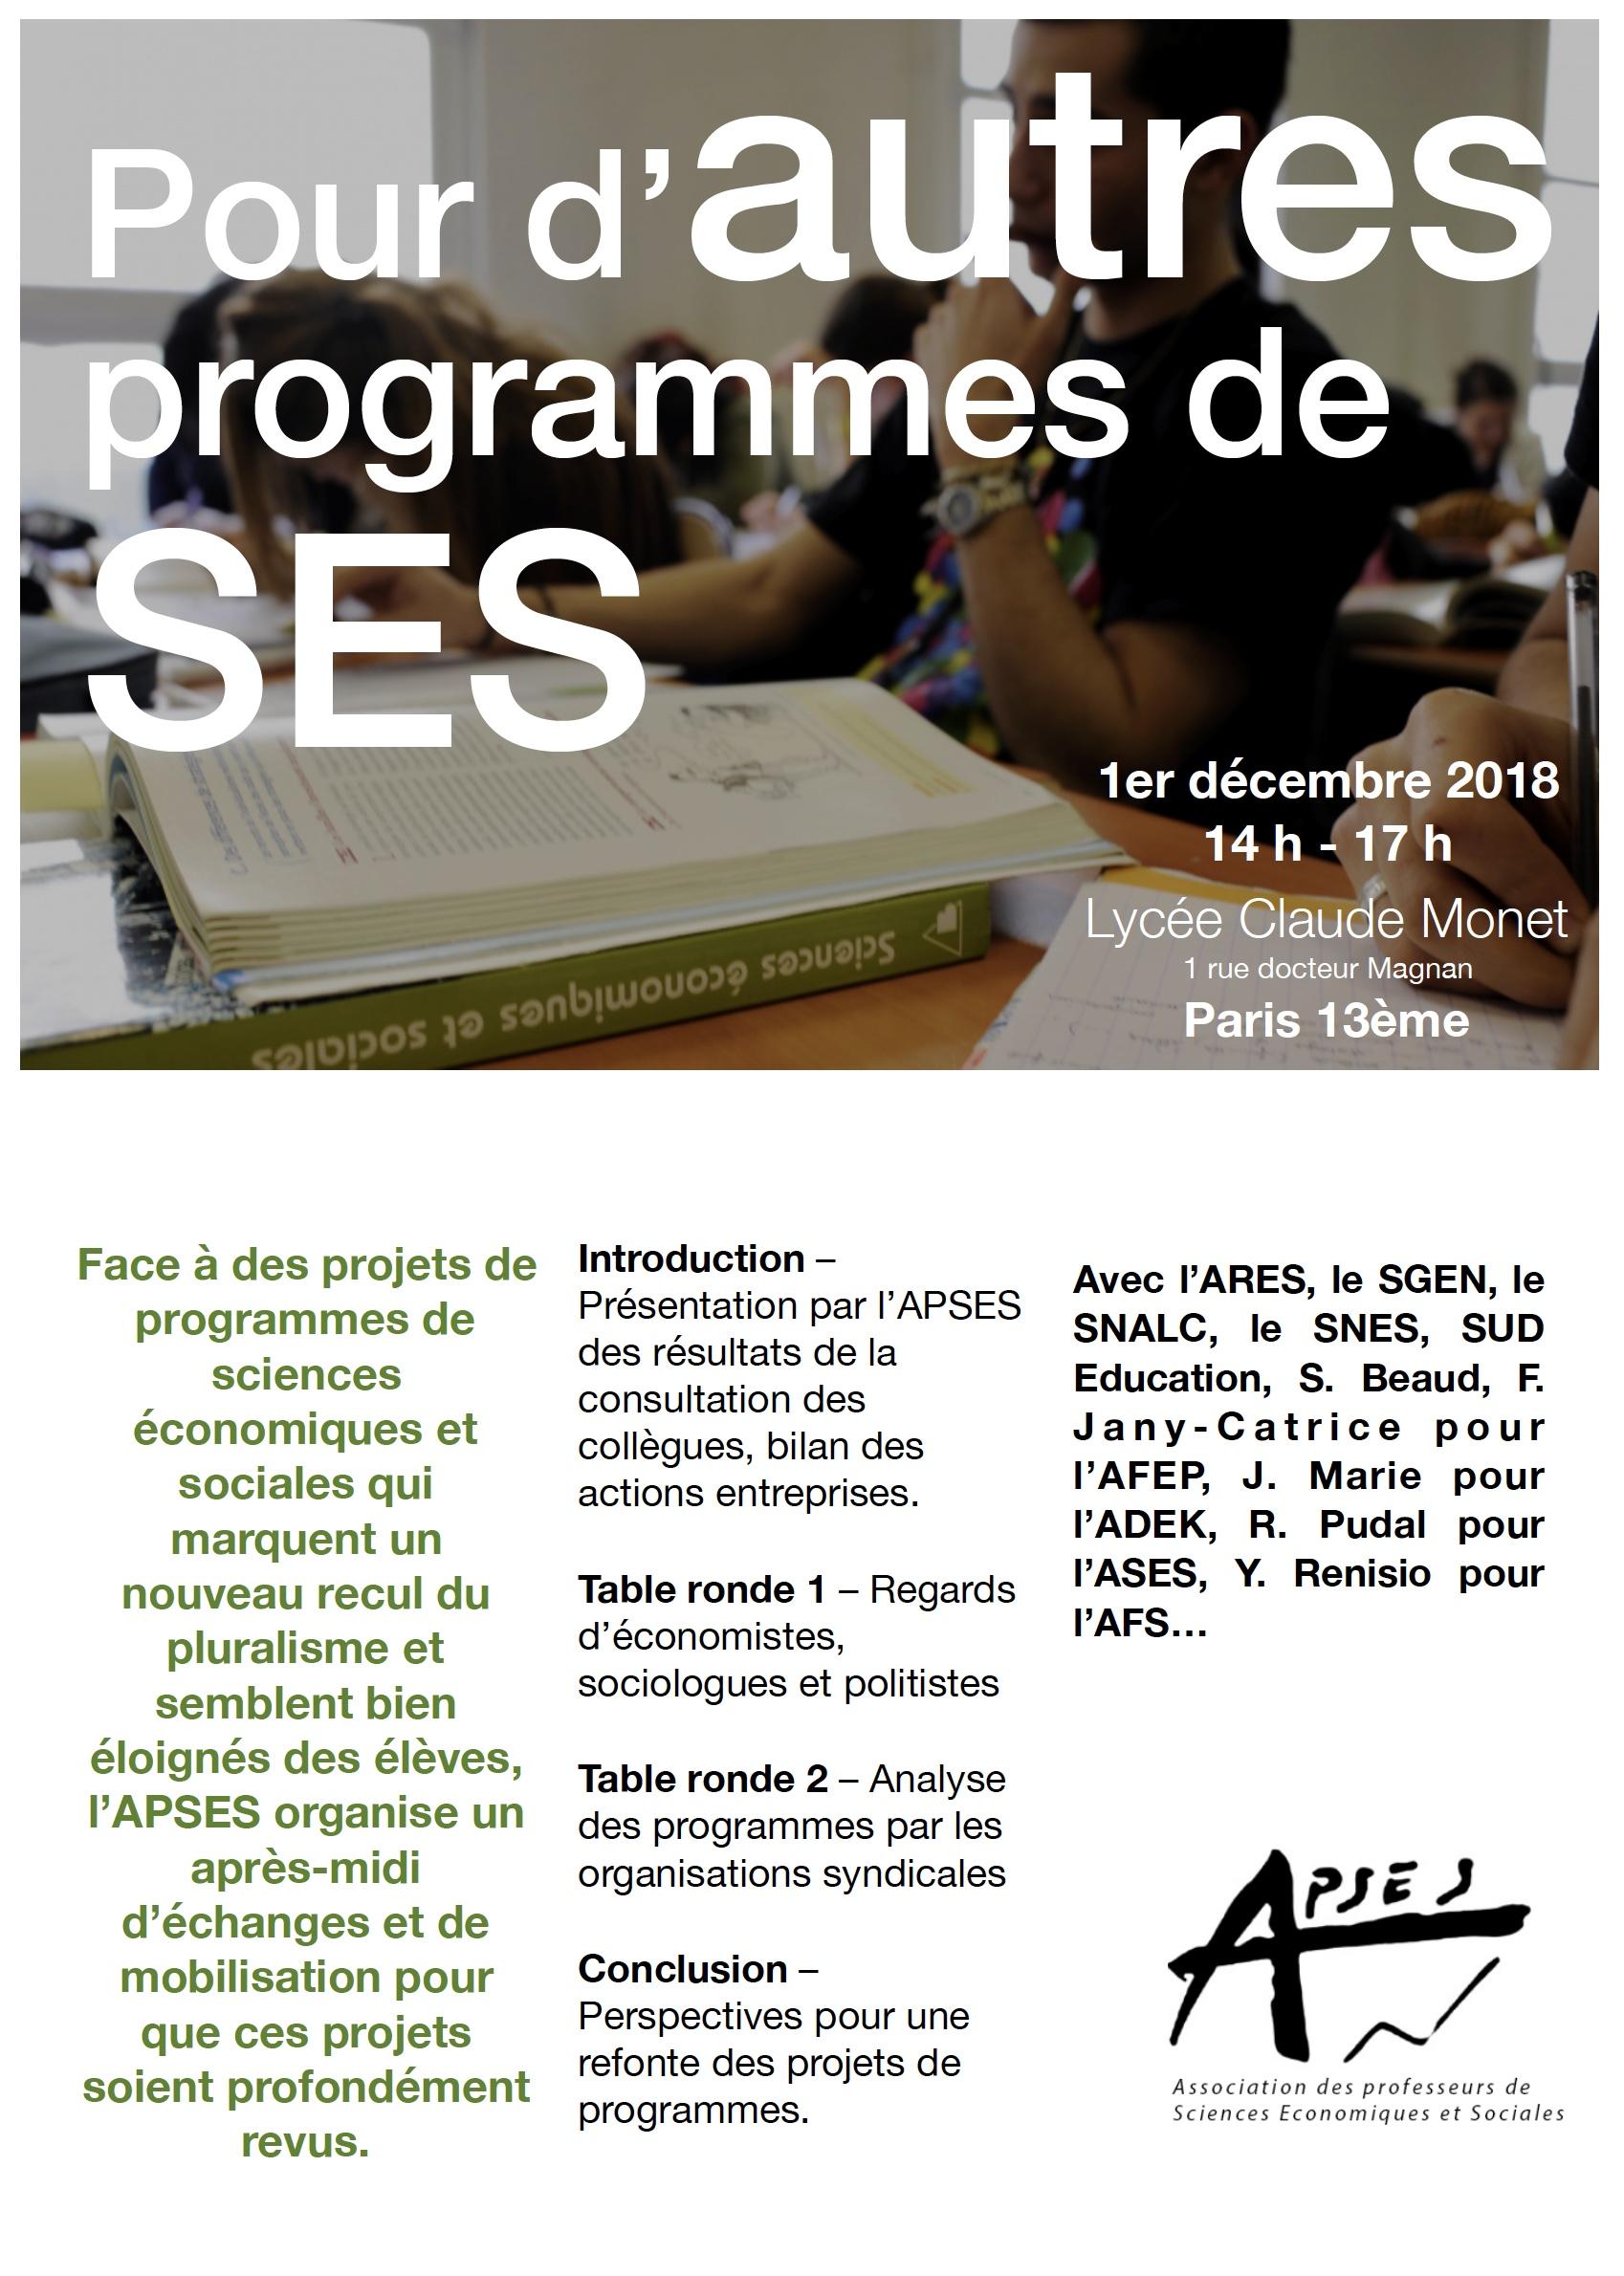 https://www.apses.org/version2015/wp-content/uploads/2018/11/affiche1-12_v3.jpeg